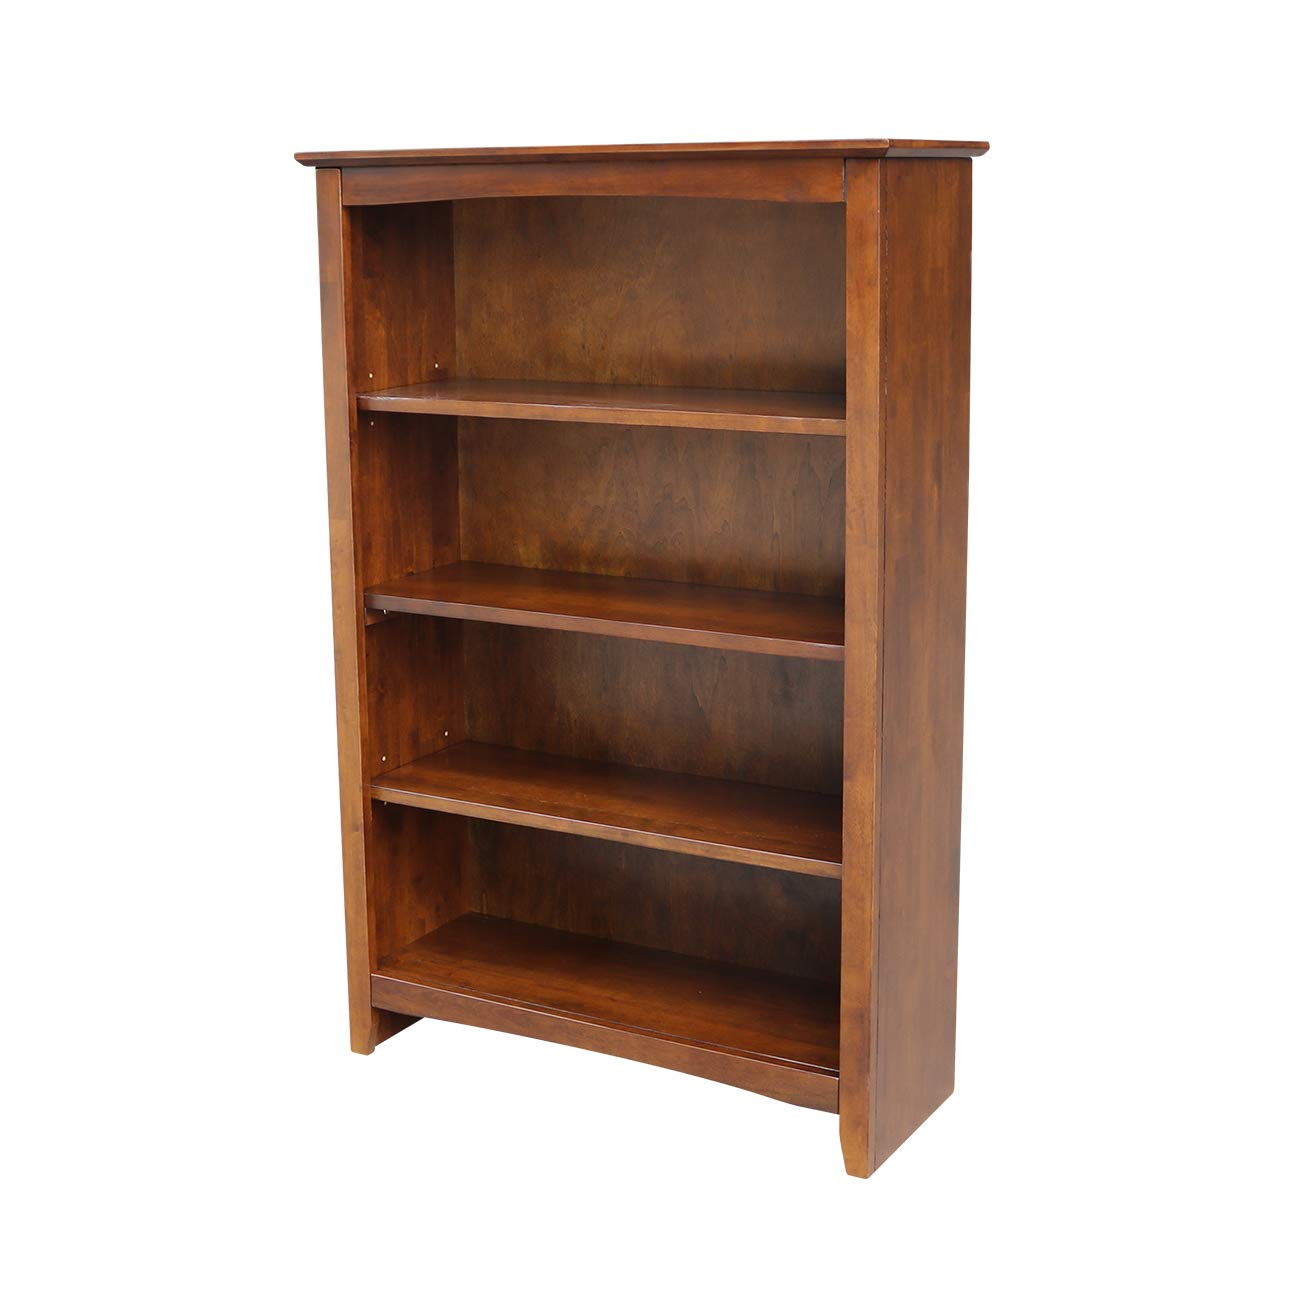 International Concepts Shaker Bookcase, 48-Inch, Espresso